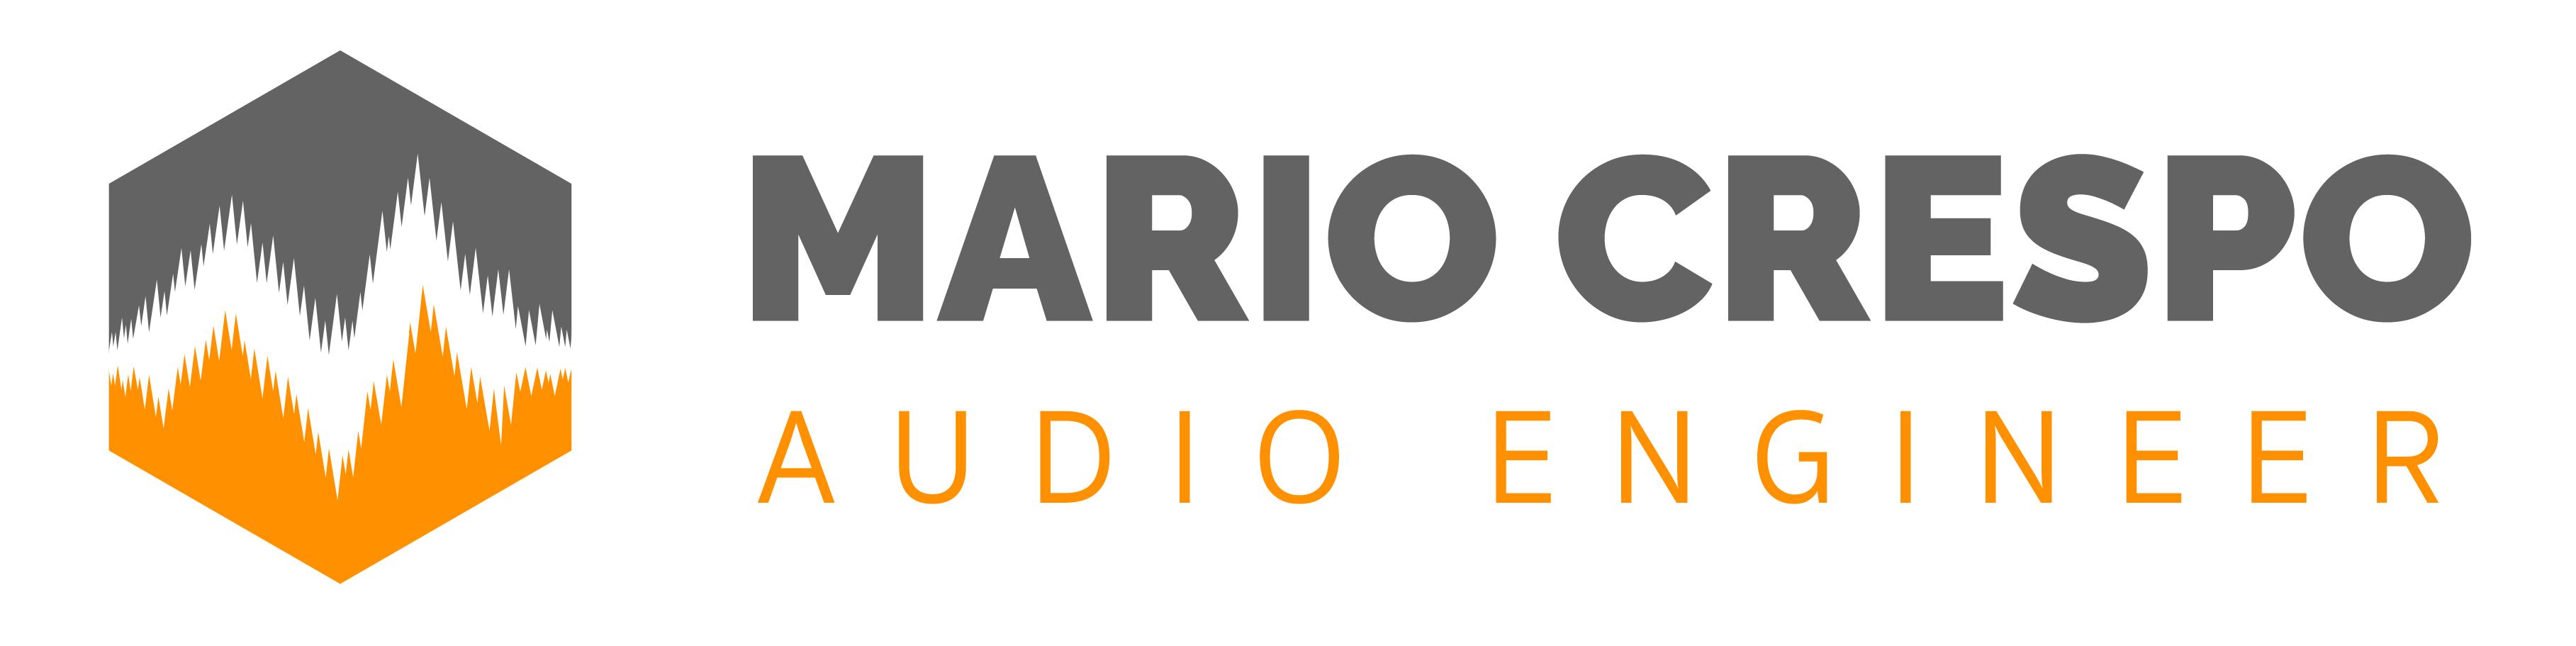 Mario Crespo – Audio Engineer